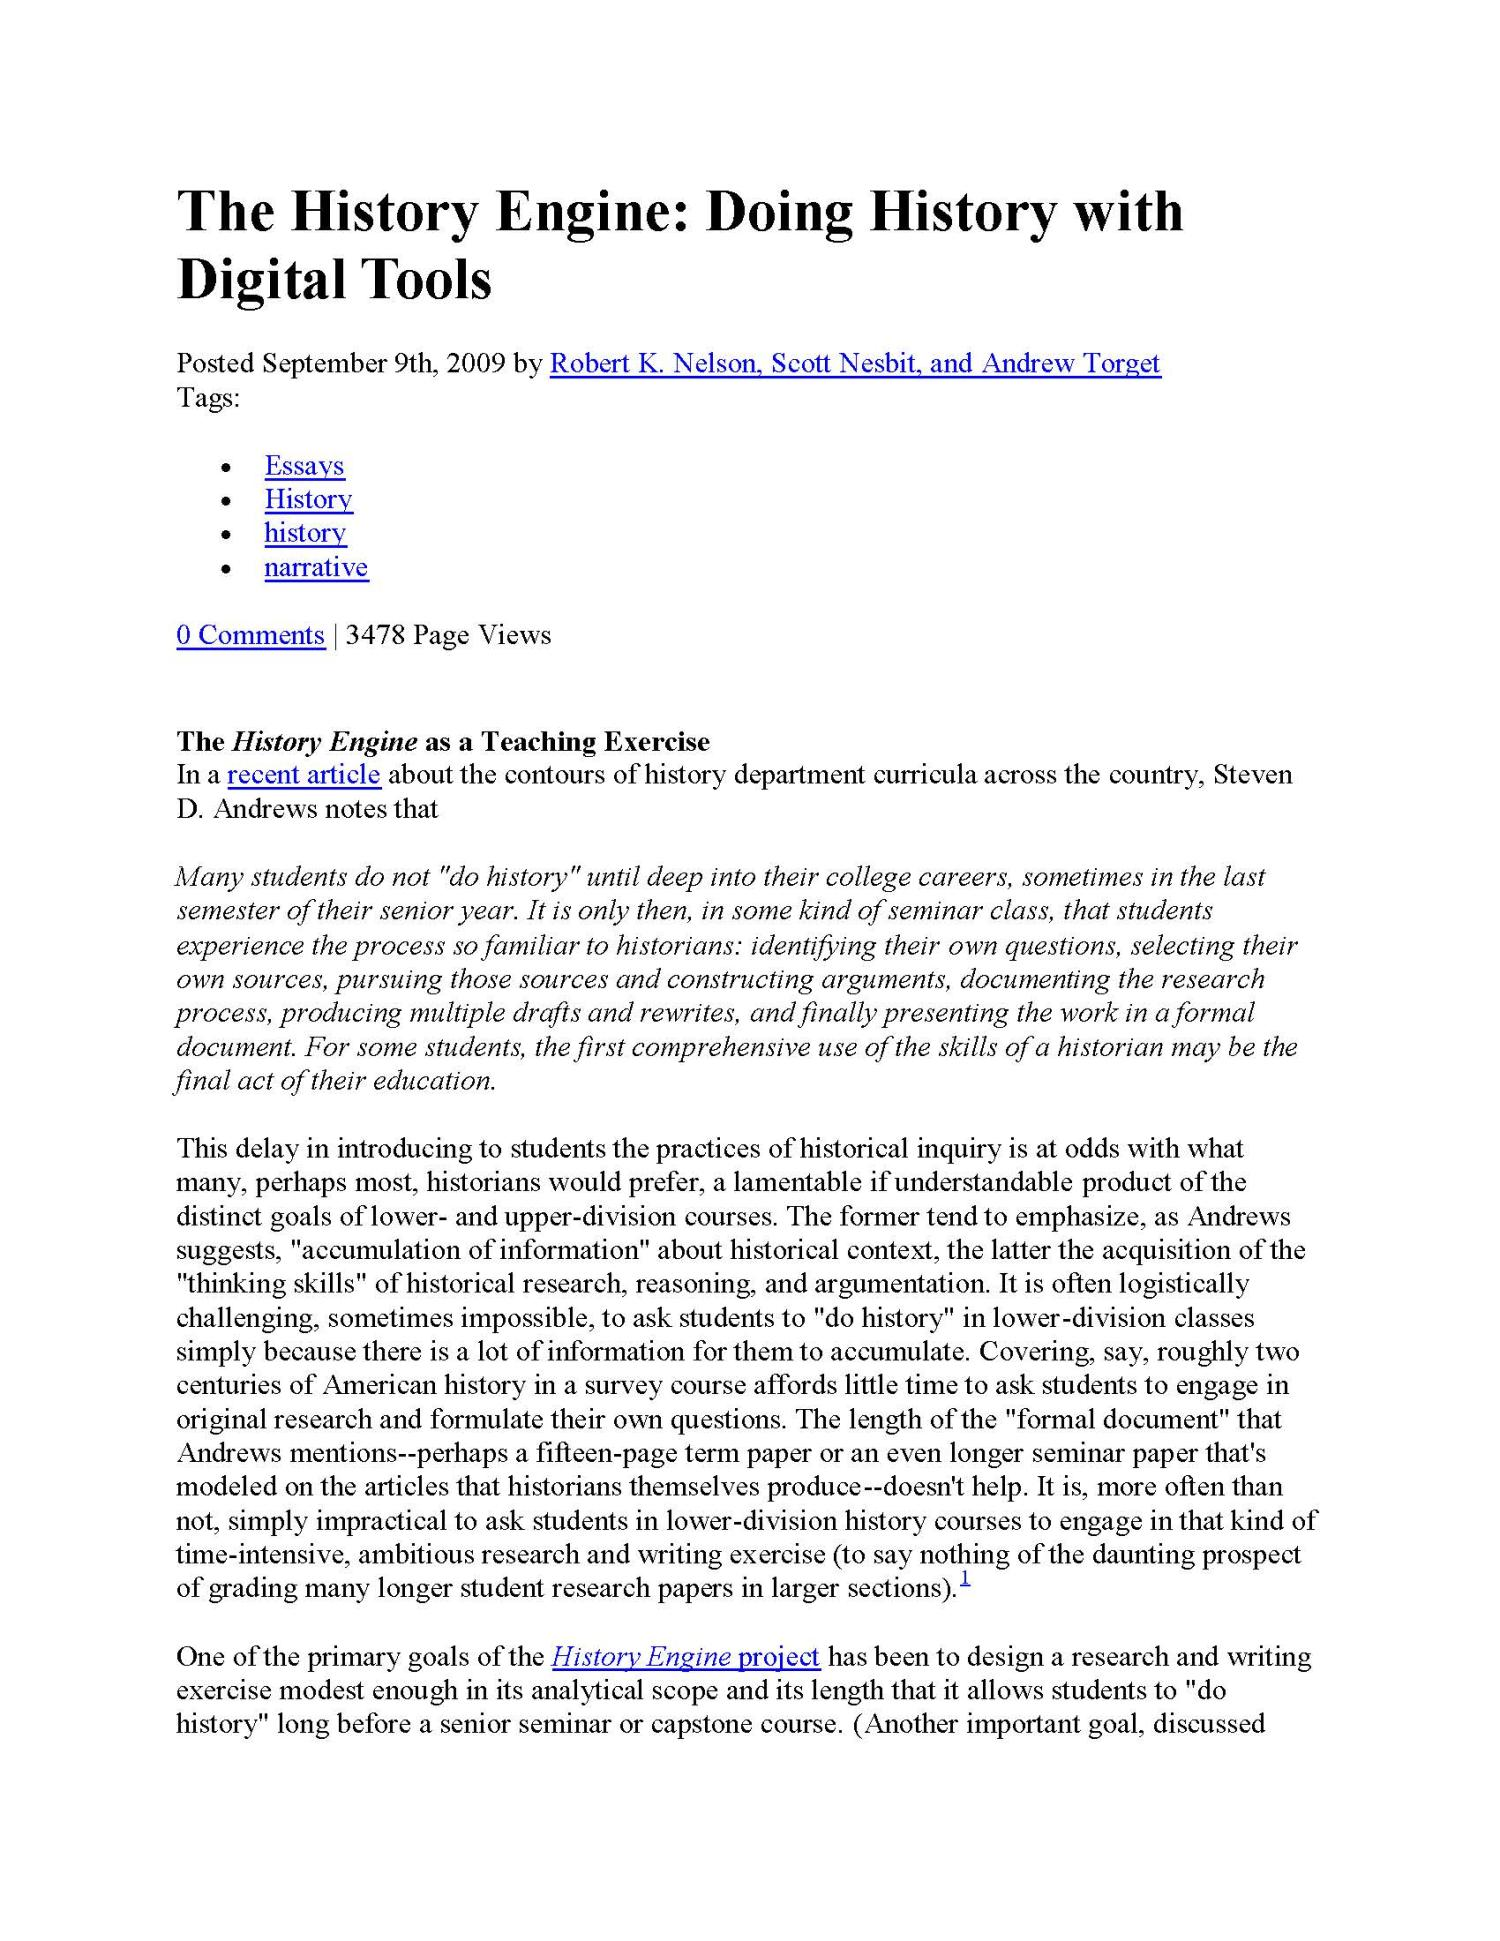 The History Engine: Doing History with Digital Tools                                                                                                      1